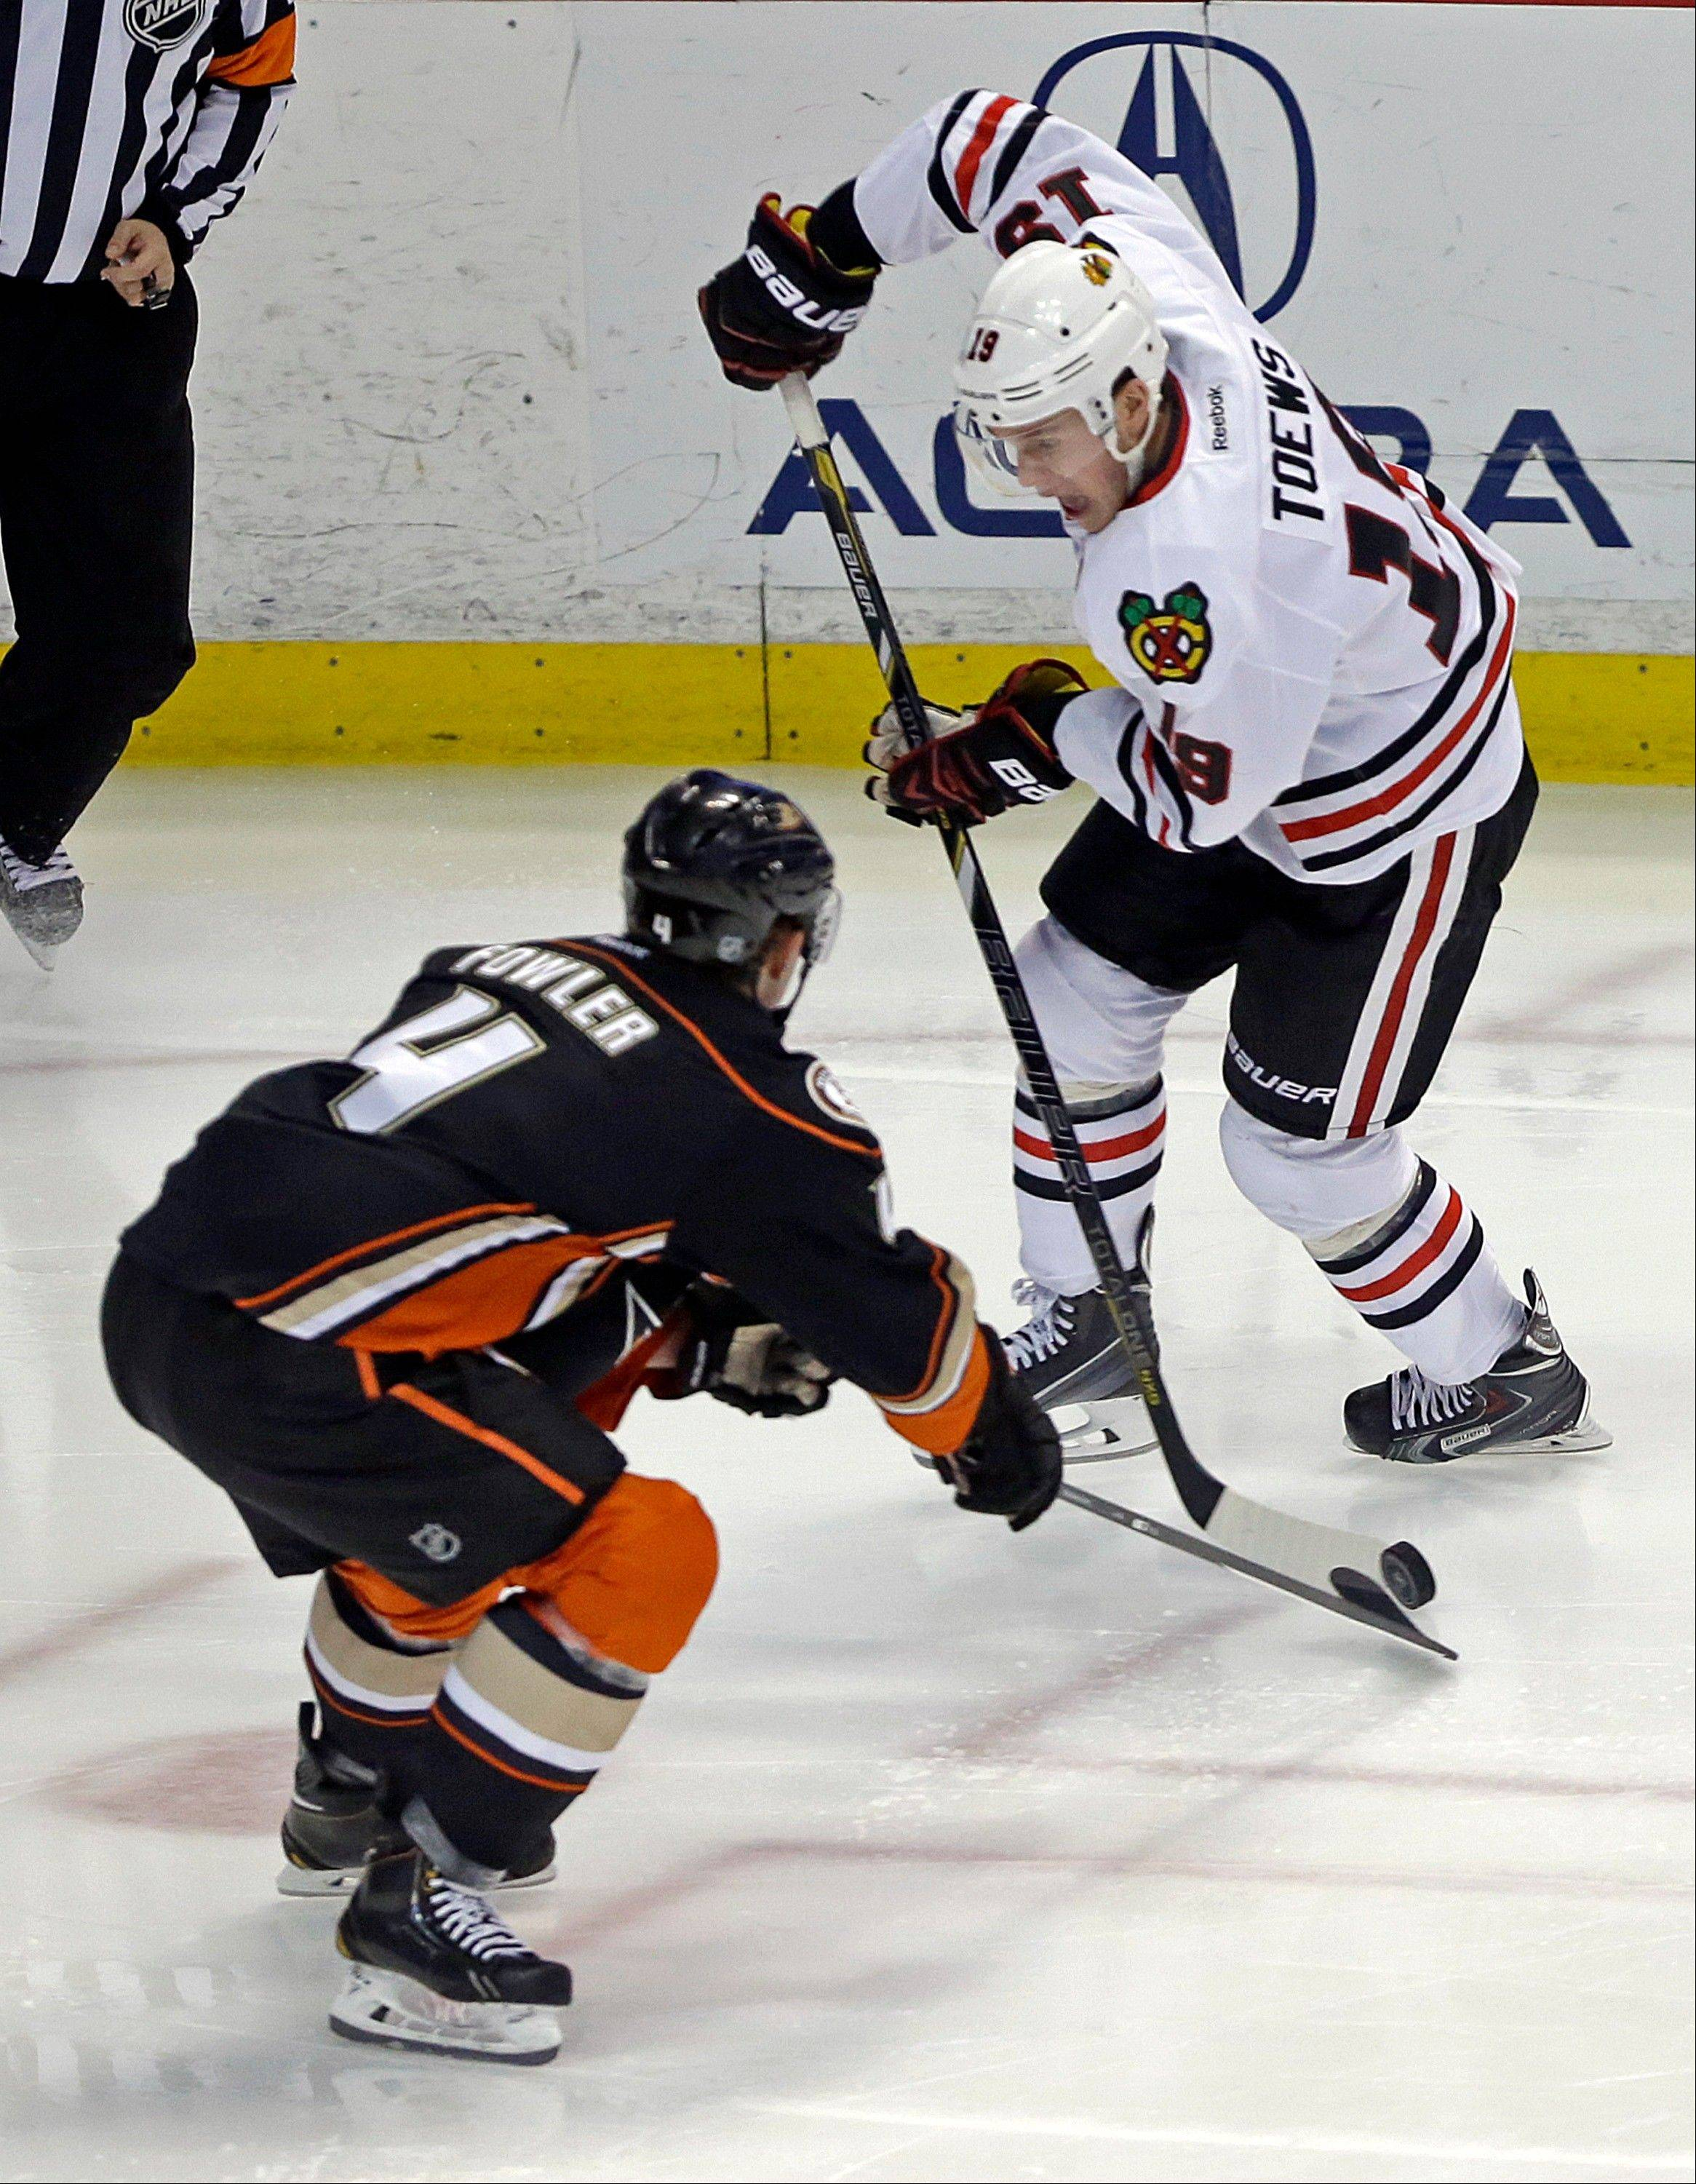 Chicago Blackhawks center Jonathan Toews (19) and Anaheim Ducks defenseman Cam Fowler (4) tangle in the third period of an NHL hockey game in Anaheim, Calif., Wednesday, Feb. 5, 2014. The Blackhawks won, 2-0.